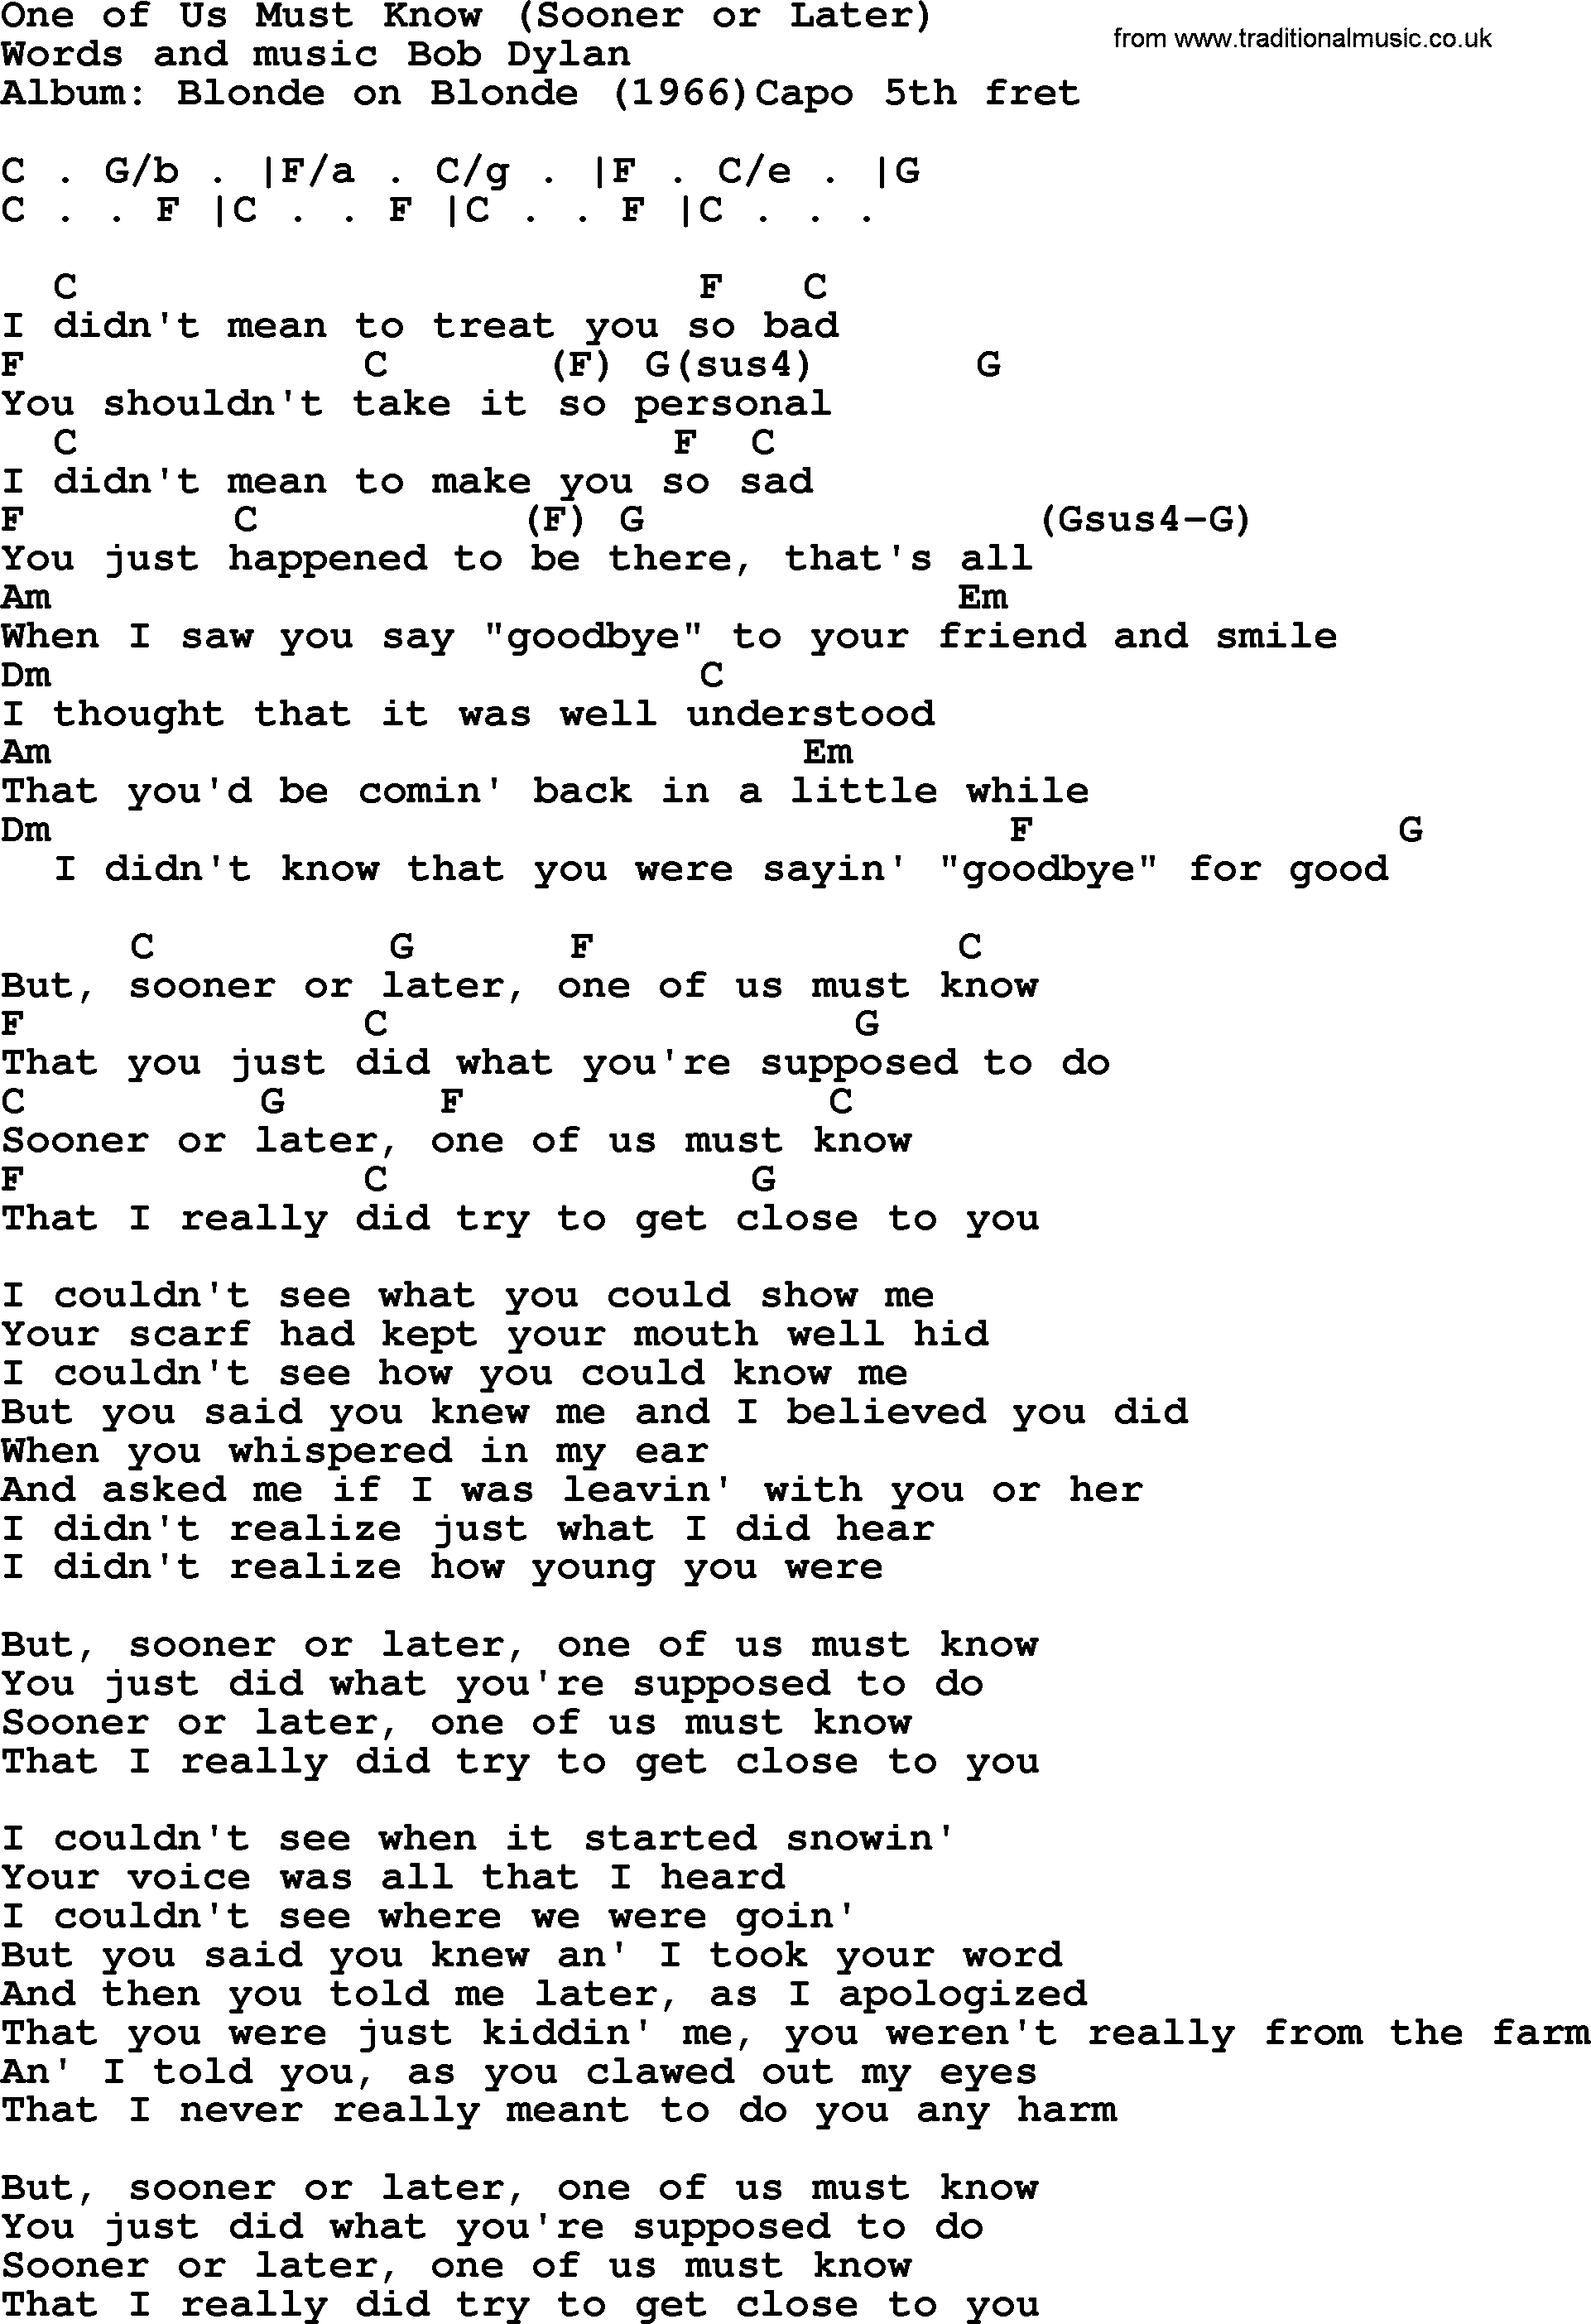 Bob dylan song one of us must know sooner or later lyrics and bob dylan song lyrics with chords one of us must know sooner or hexwebz Image collections